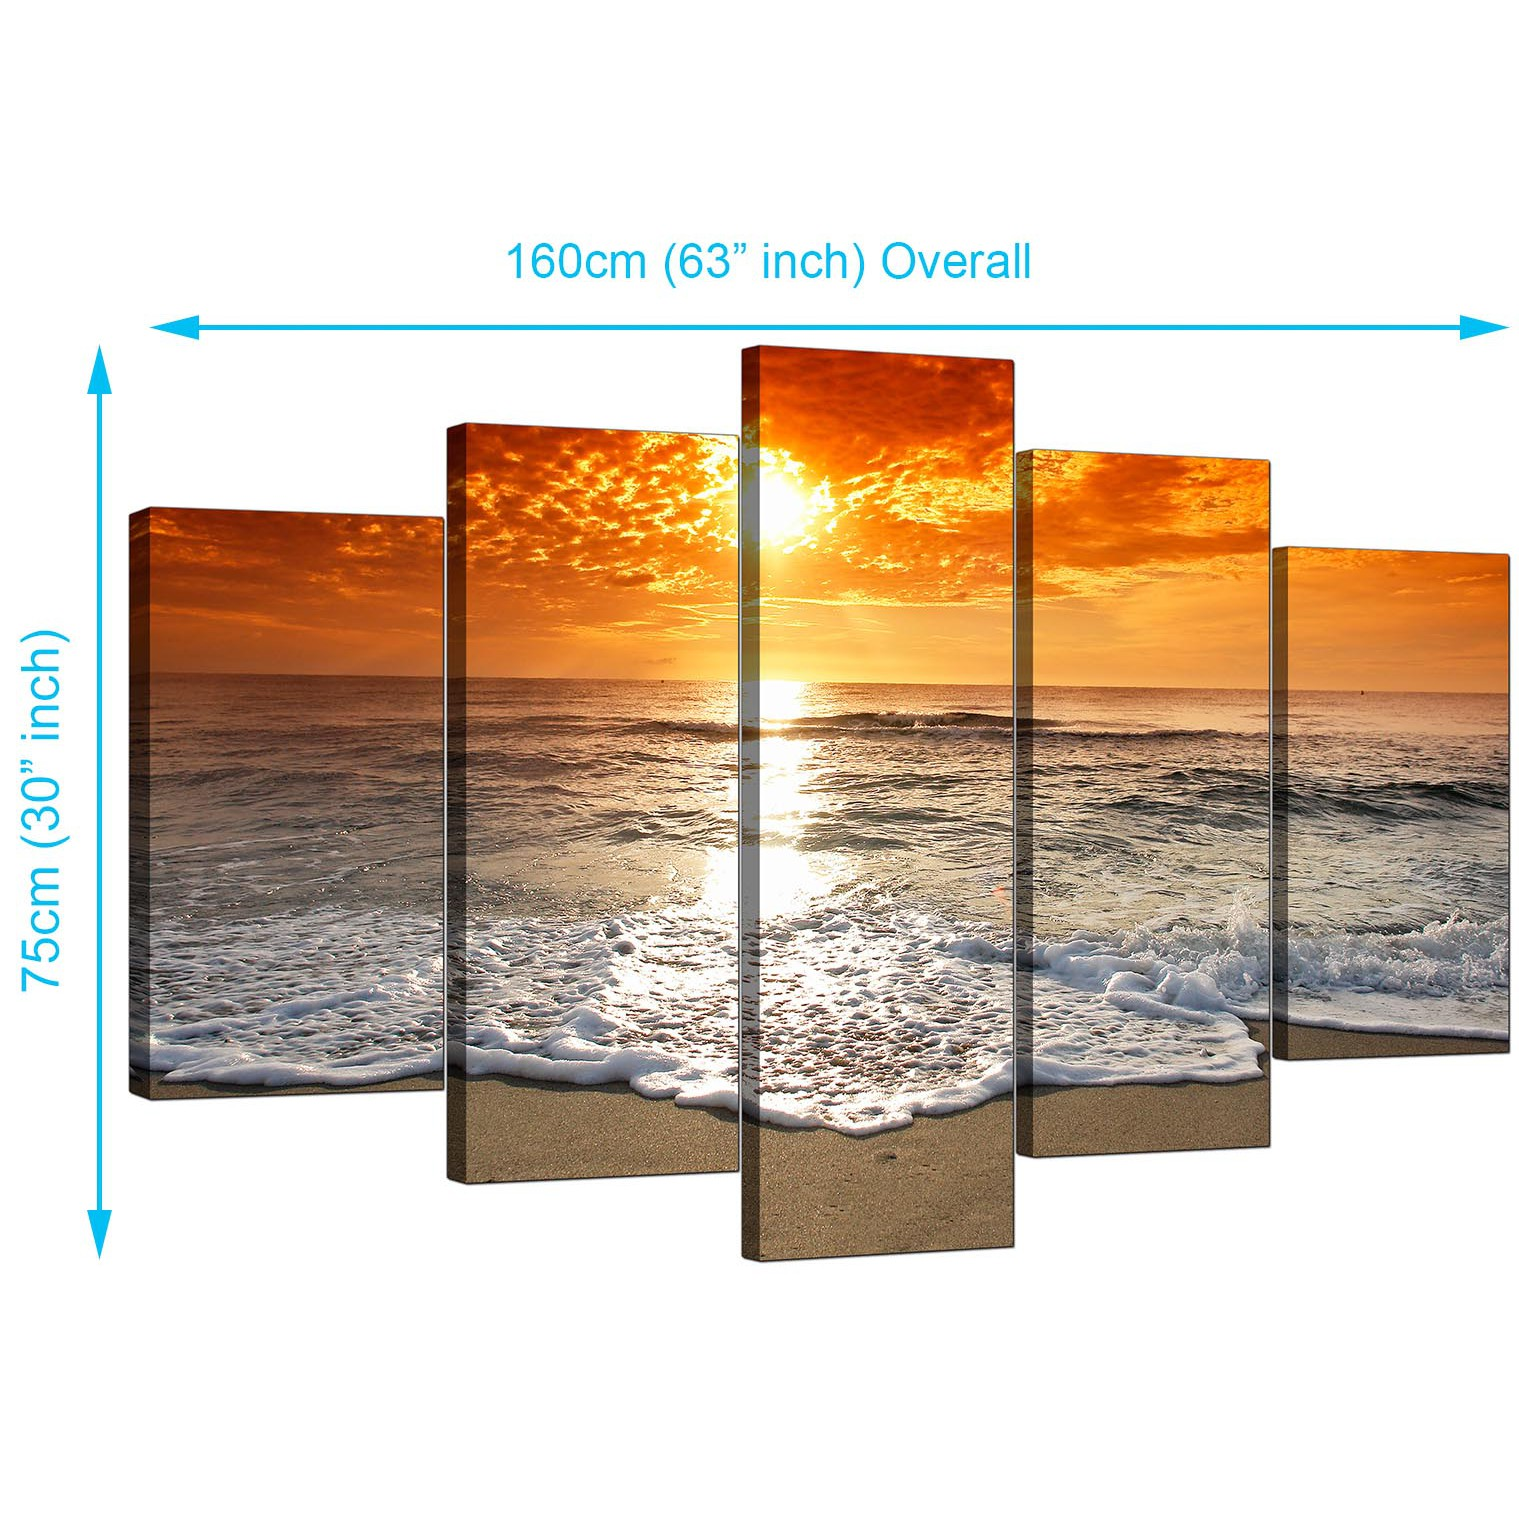 Display Gallery Item 1; 5 Piece Set of Living-Room Orange Canvas Prints Display Gallery Item 2 ...  sc 1 st  Wallfillers & Beach Sunset Canvas Prints for your Living Room - 5 Part